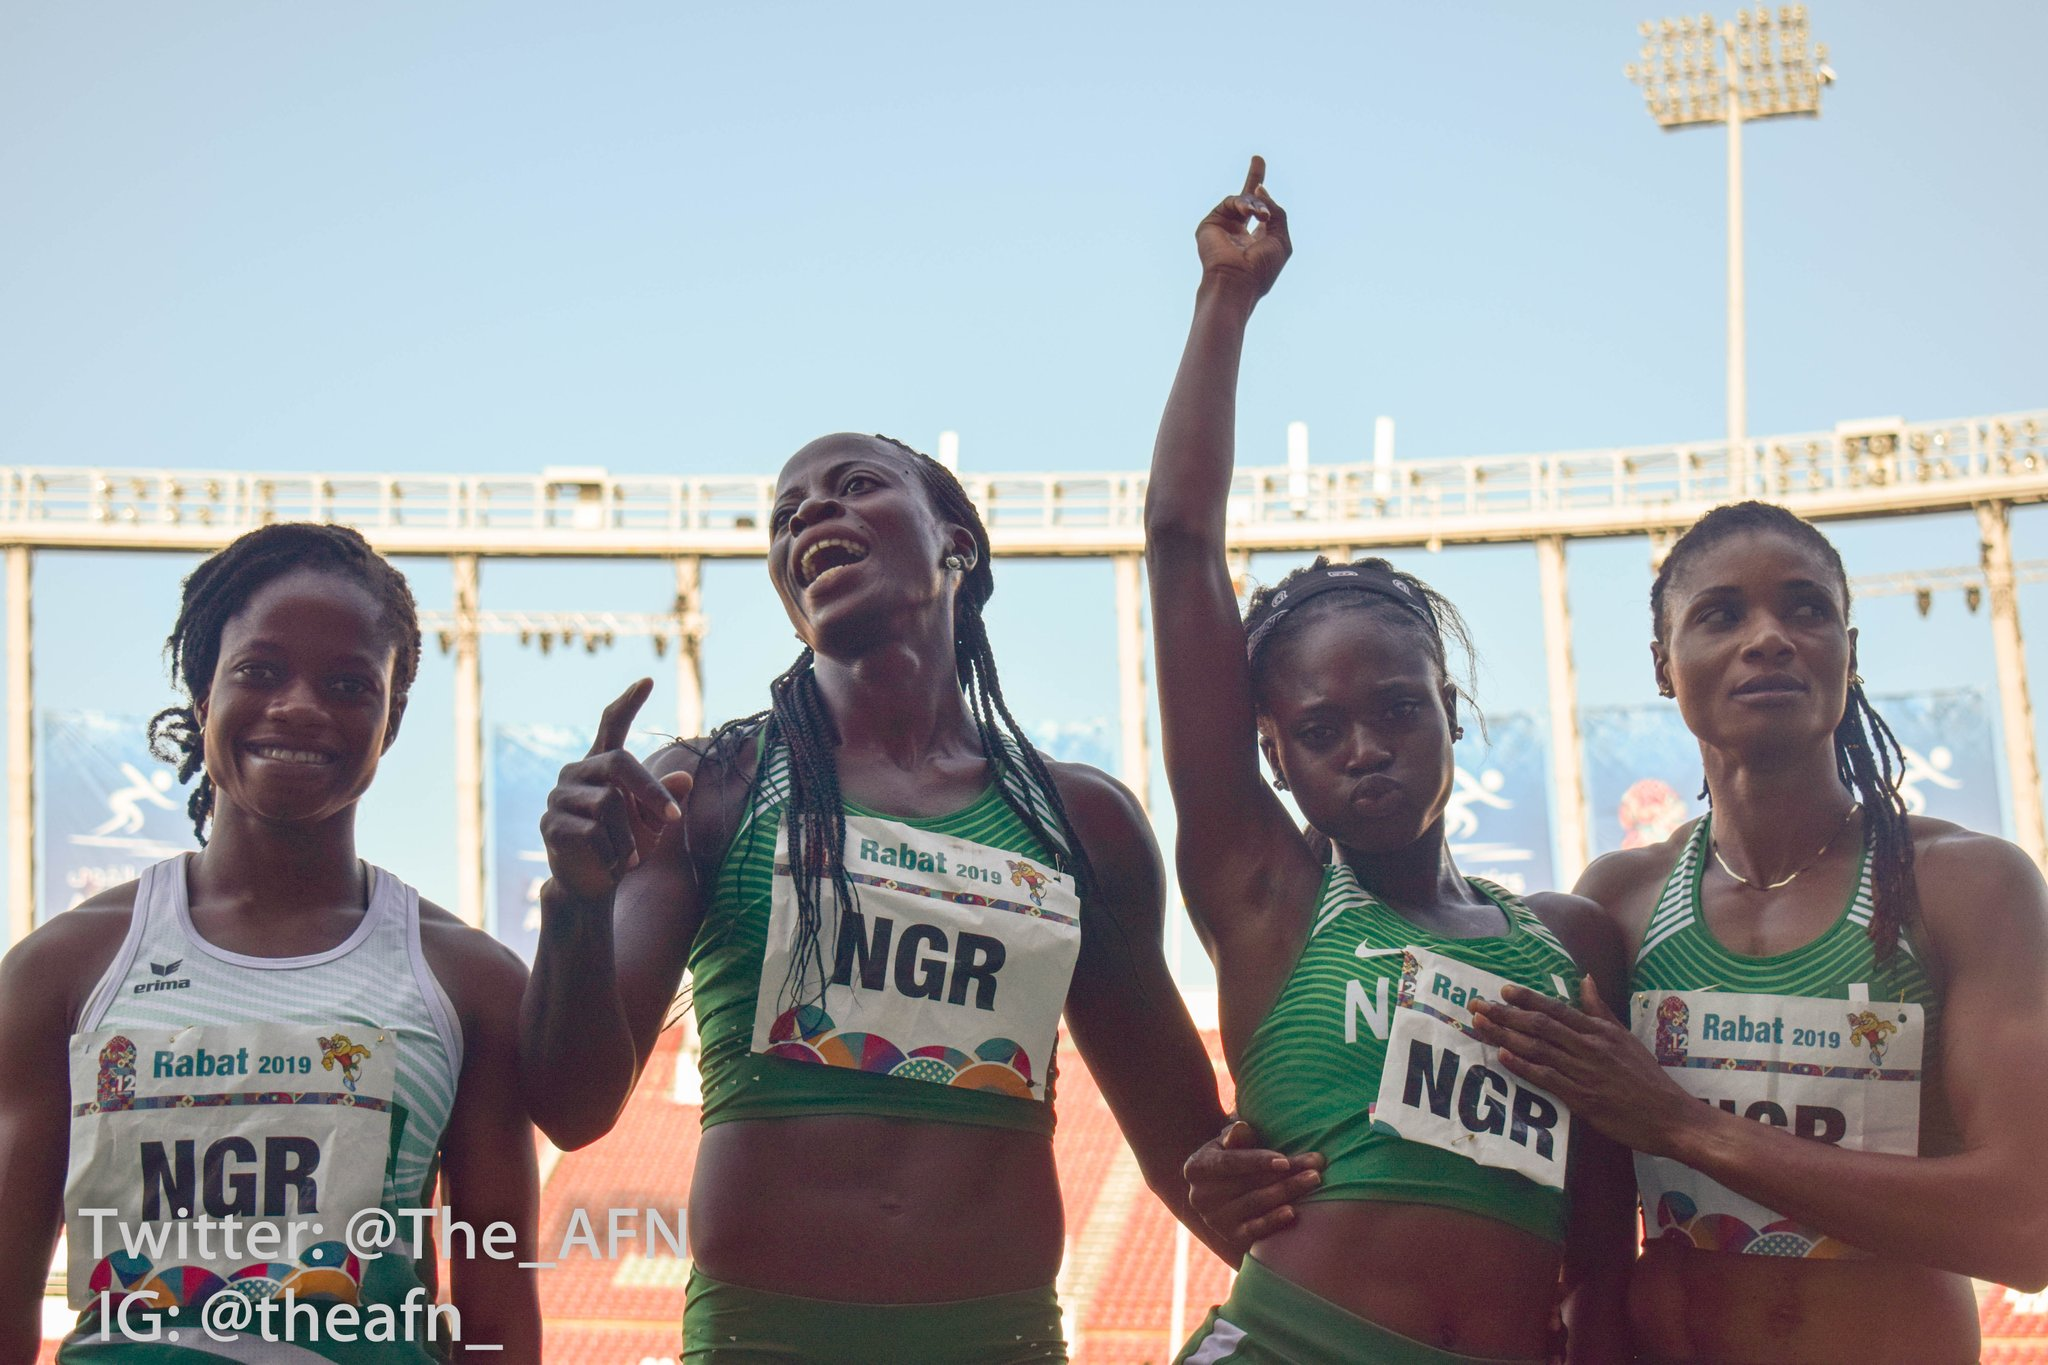 SWAN Congratulates Team Nigeria For Finishing 2nd At 12th AAG